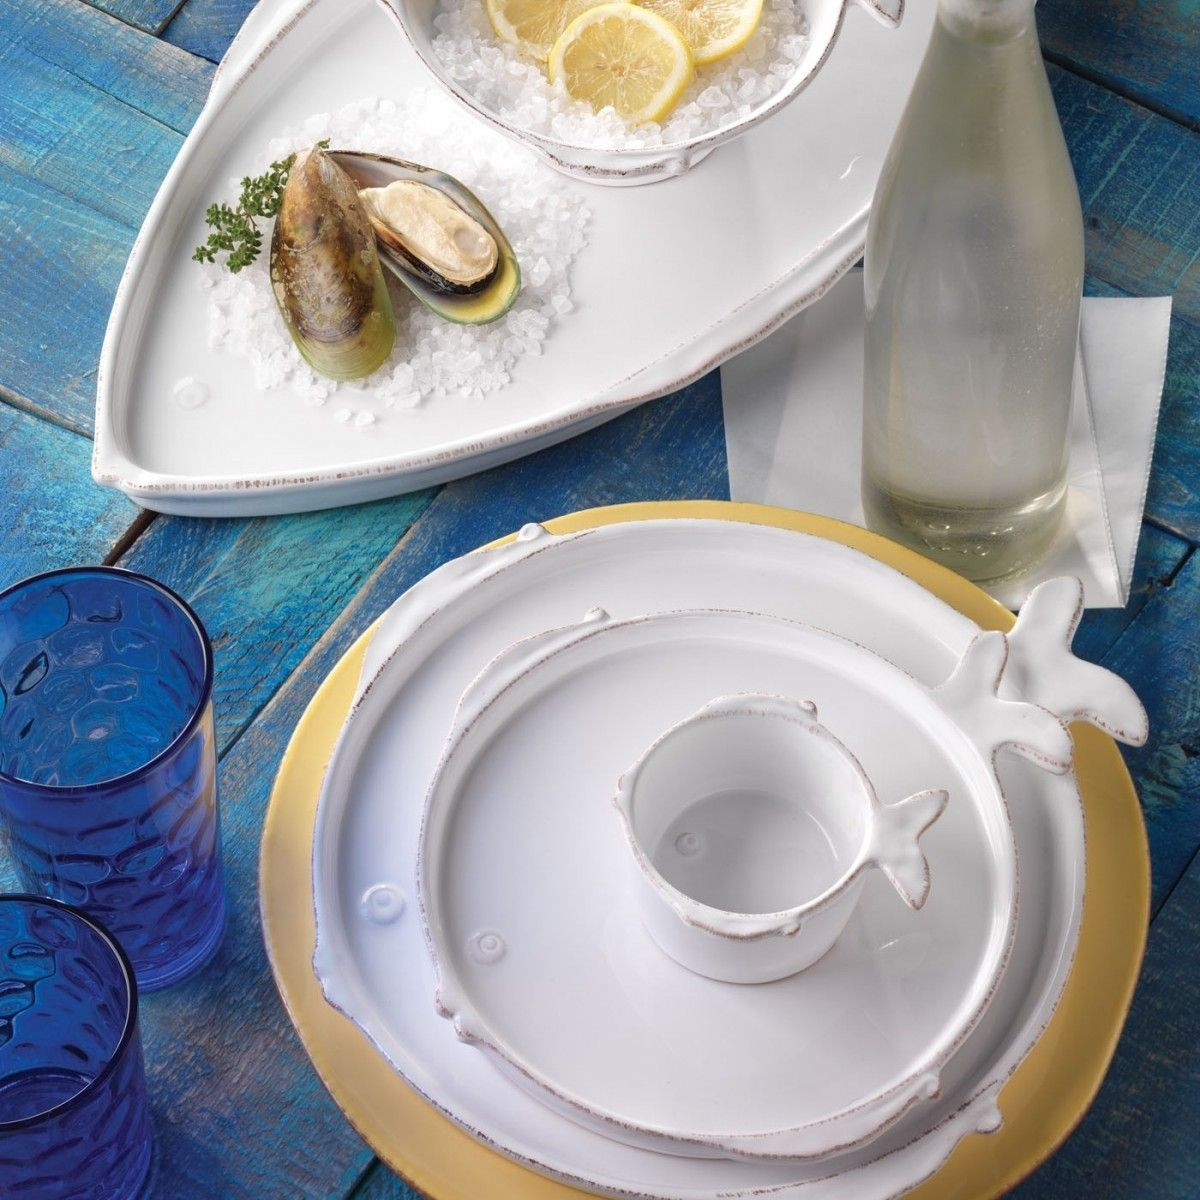 Lastra Oval Platter | Products | Pinterest | Products